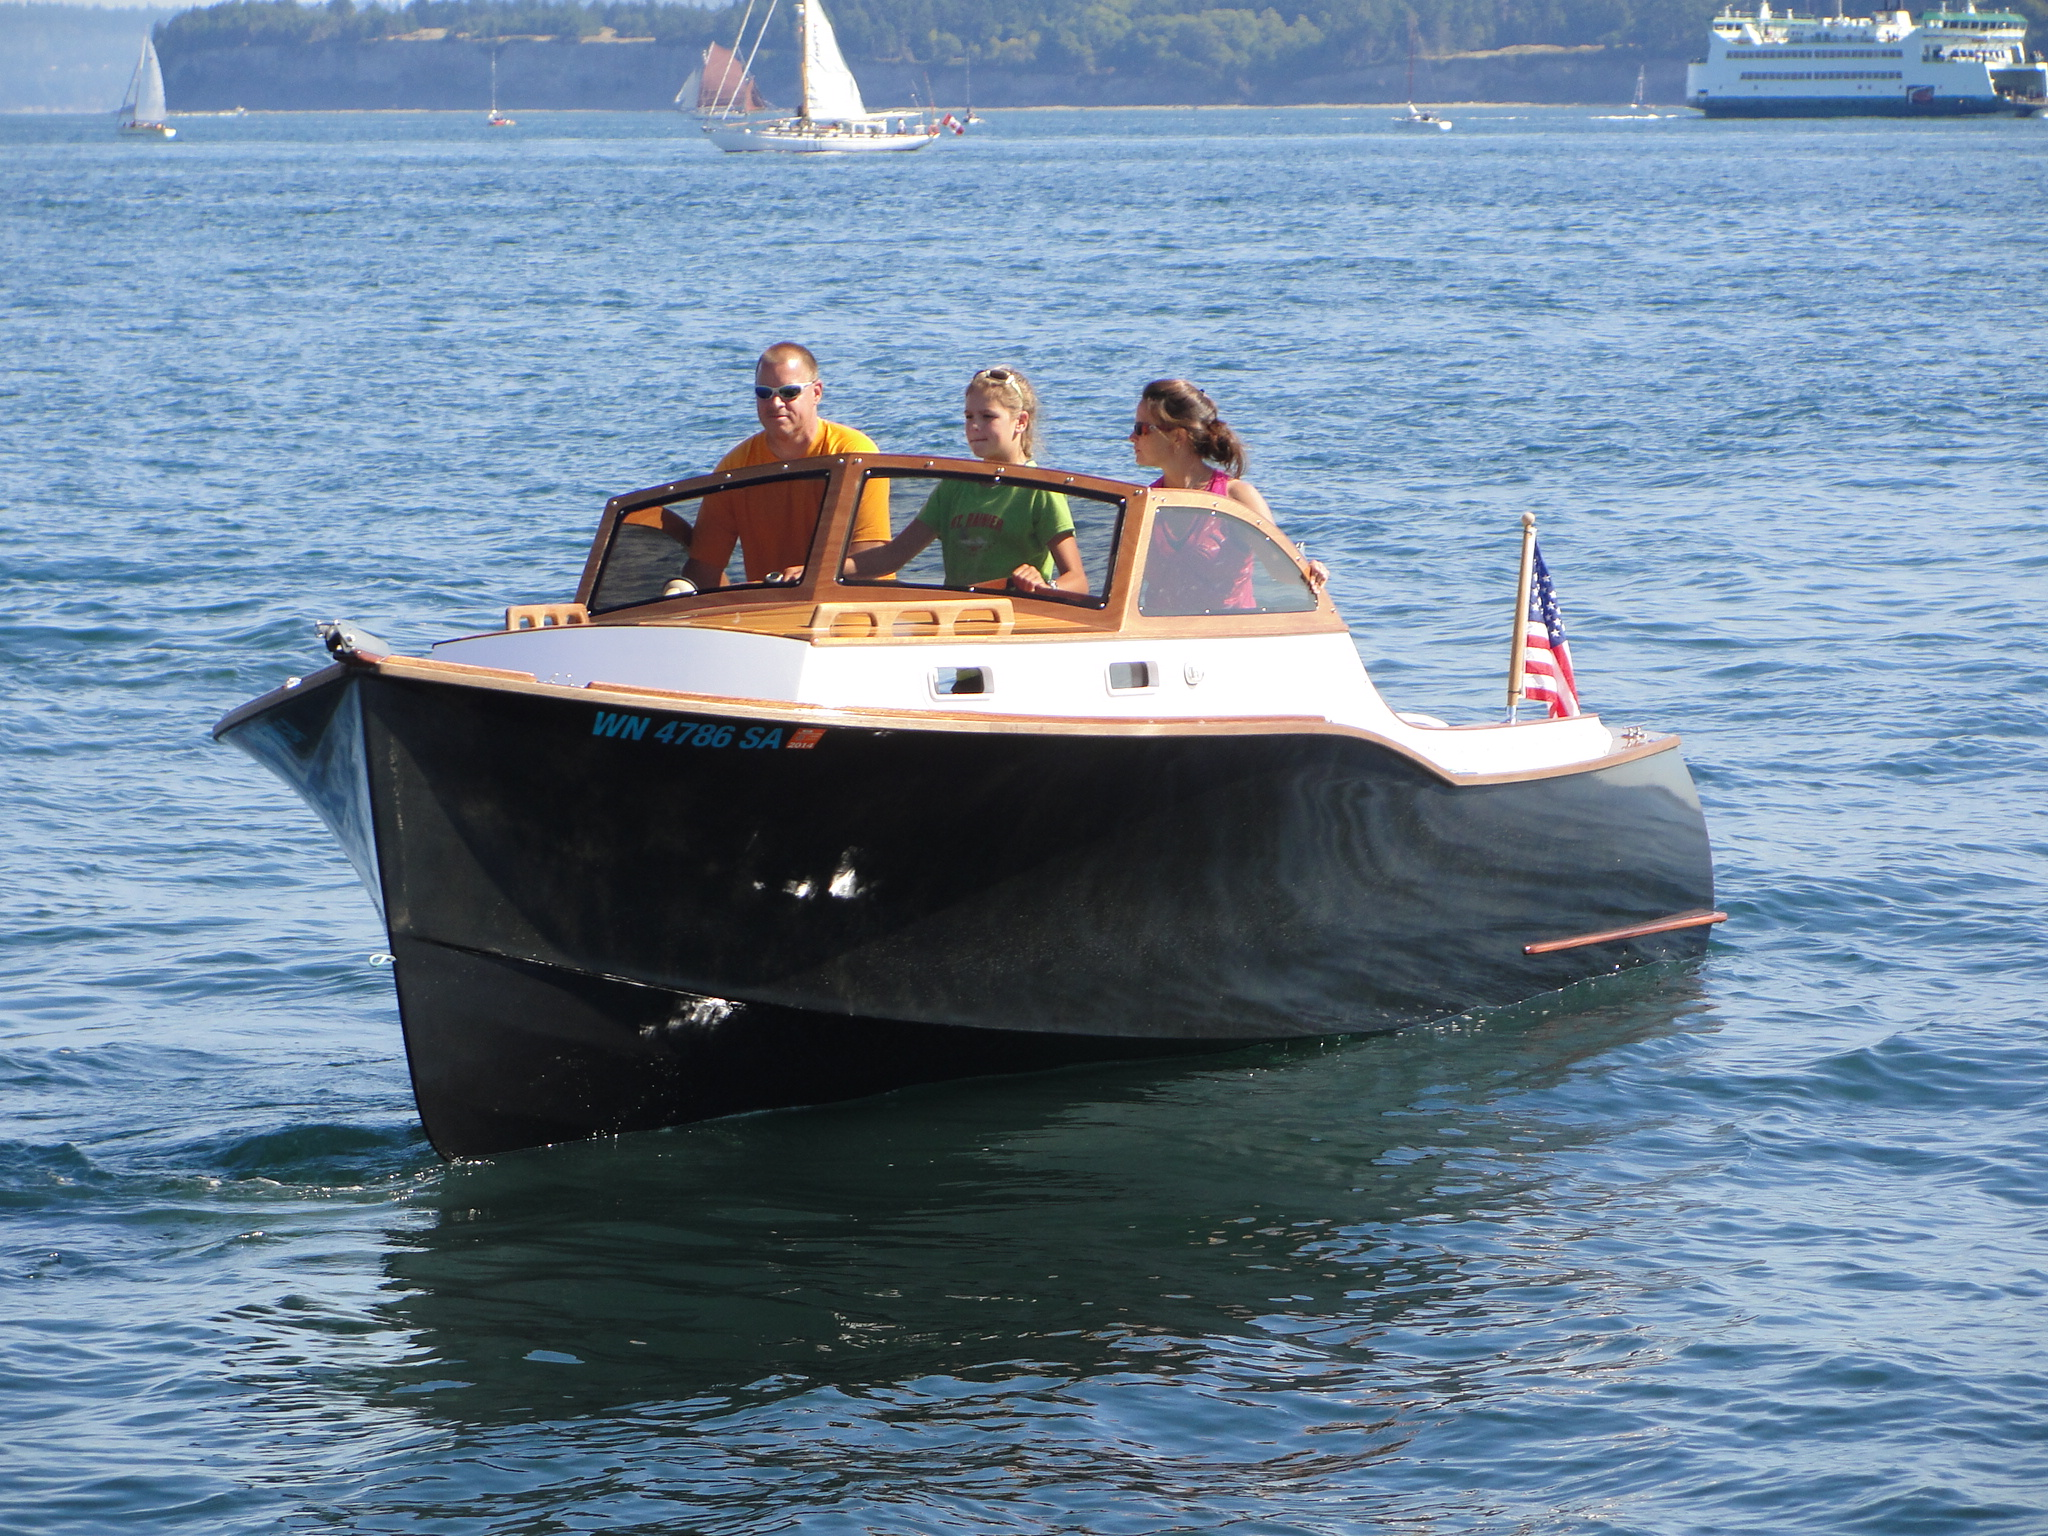 Nesting Dinghy Activities | Port Townsend Watercraft BLOG | Page 3